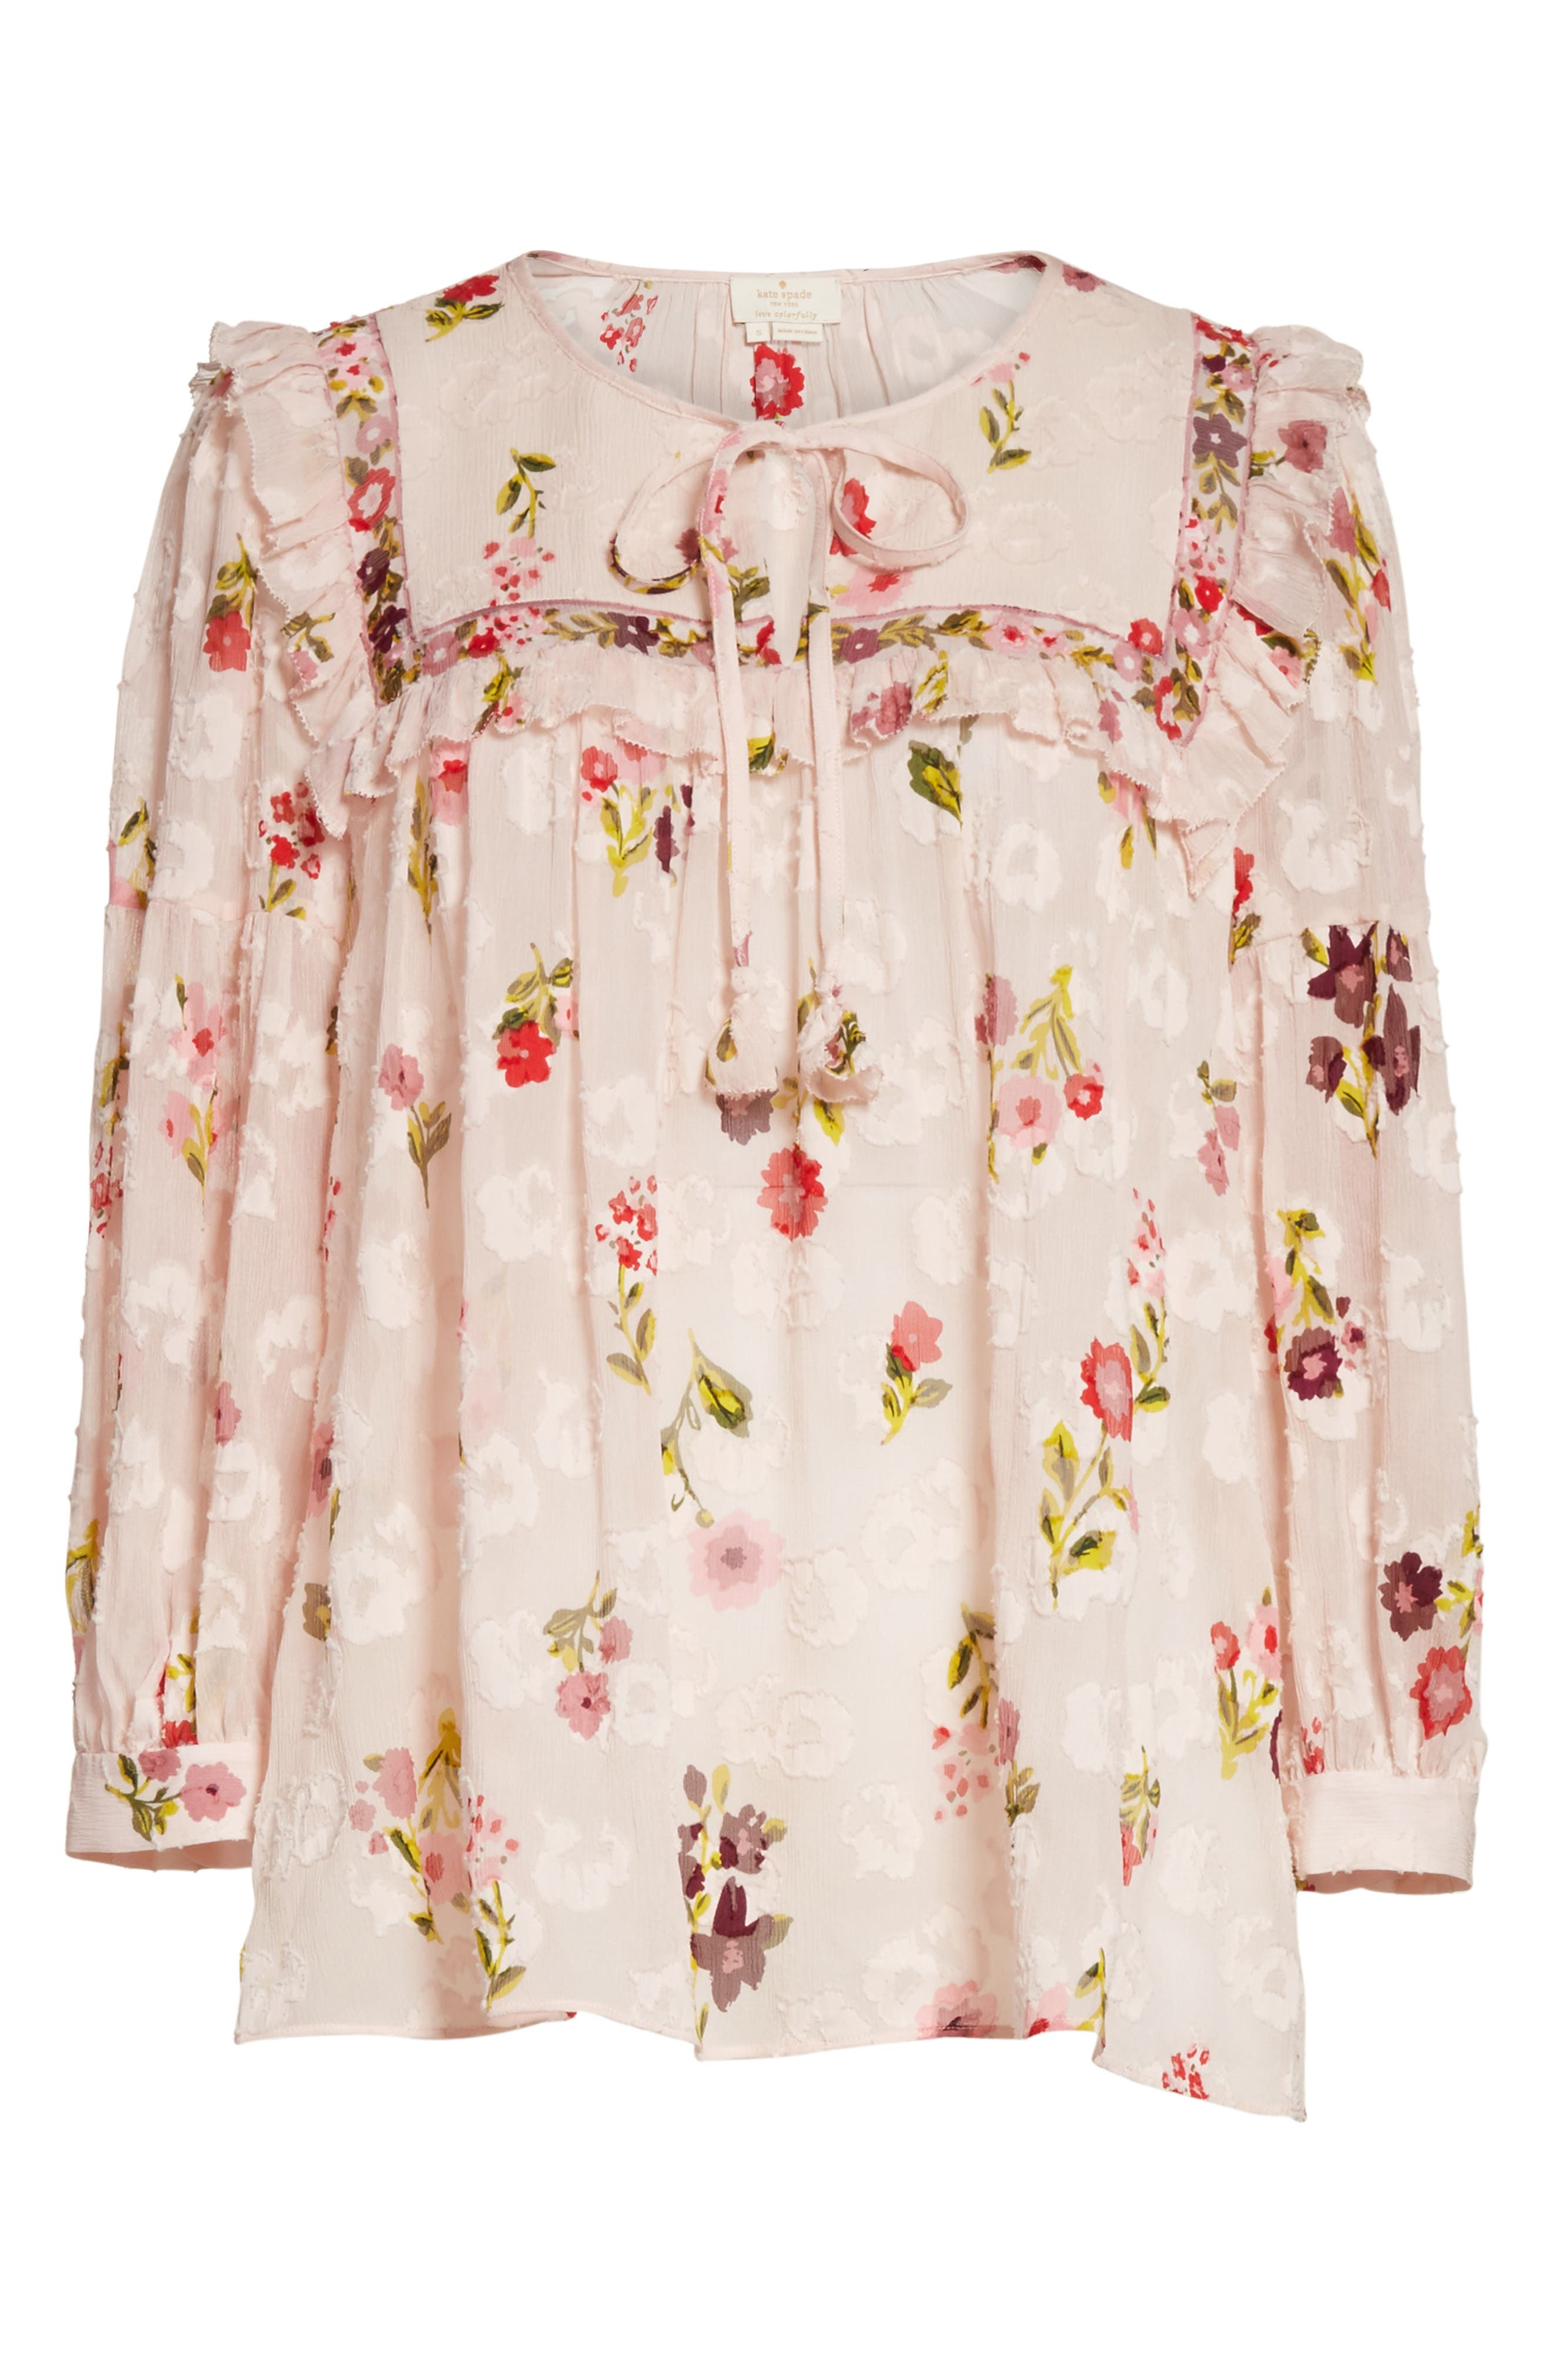 in bloom chiffon top,                             Alternate thumbnail 6, color,                             677